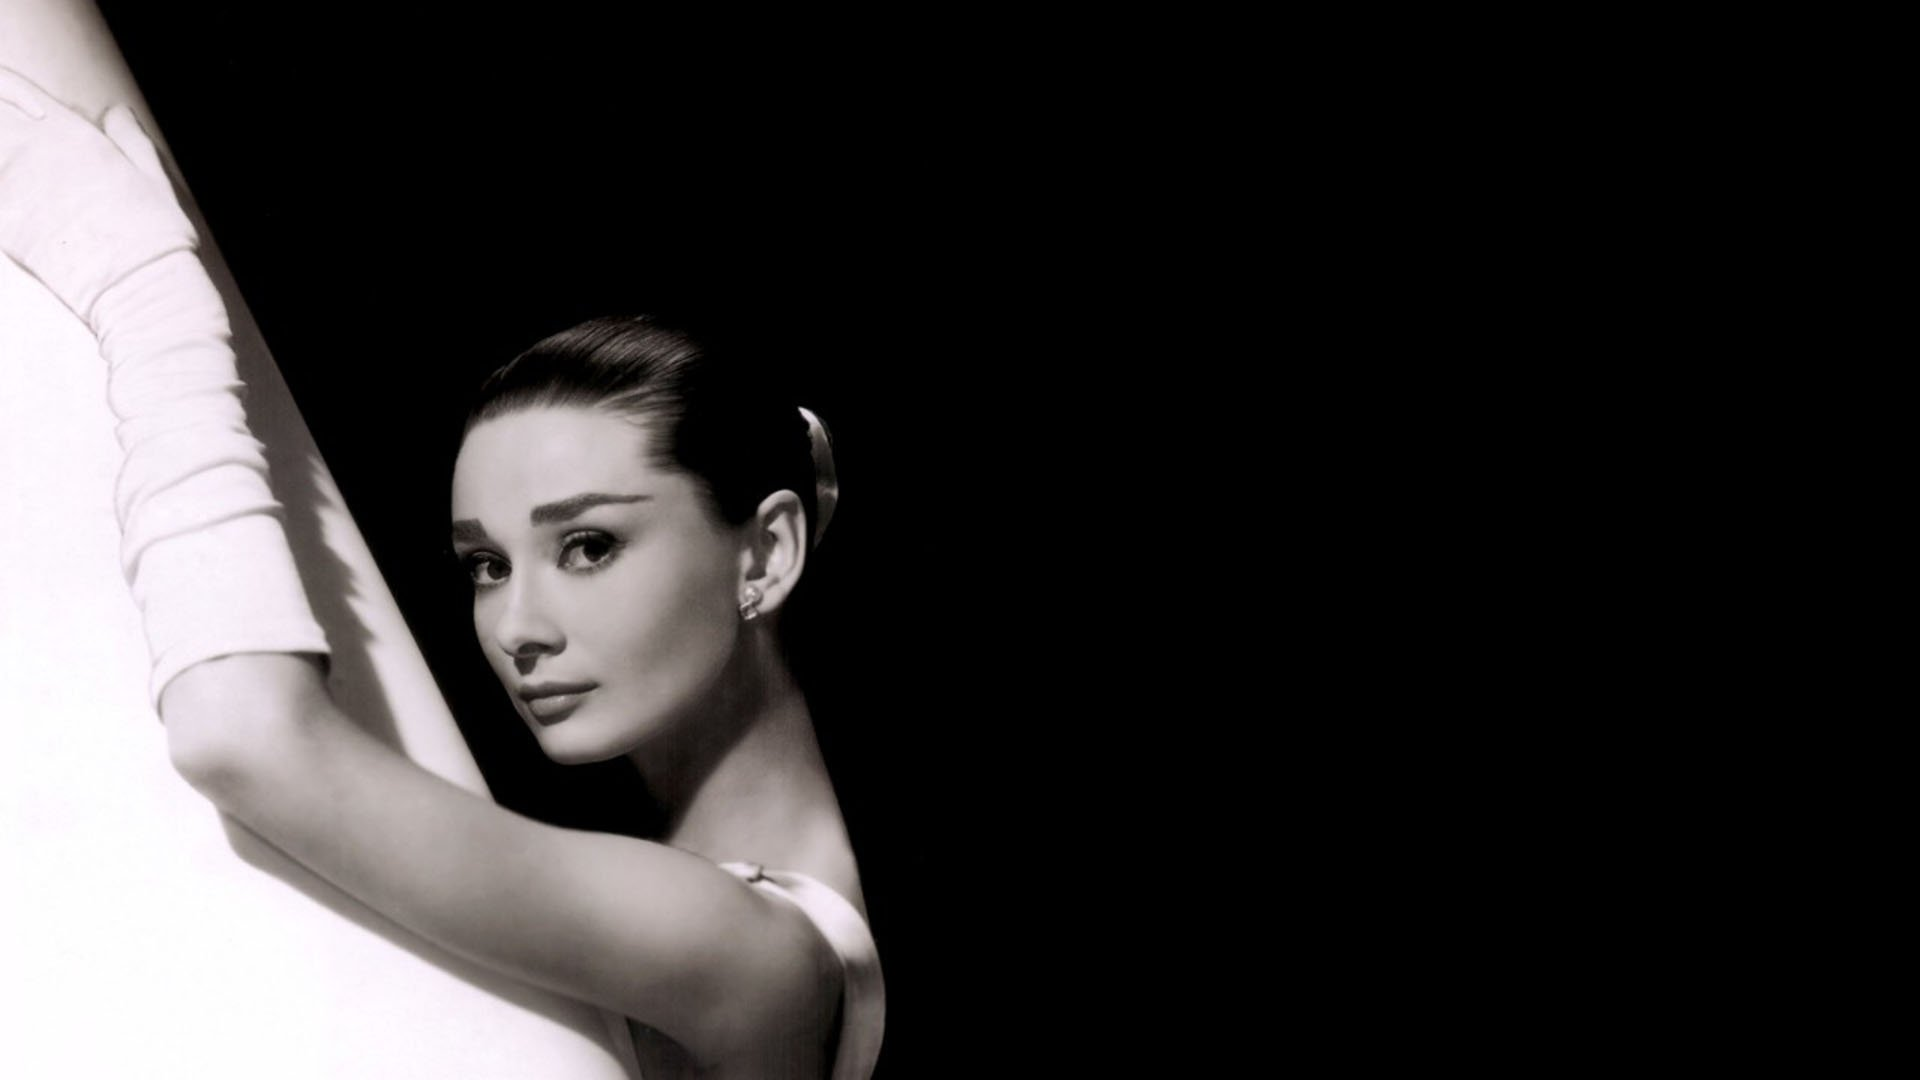 Audrey Hepburn Backgrounds   Wallpaper High Definition 1920x1080